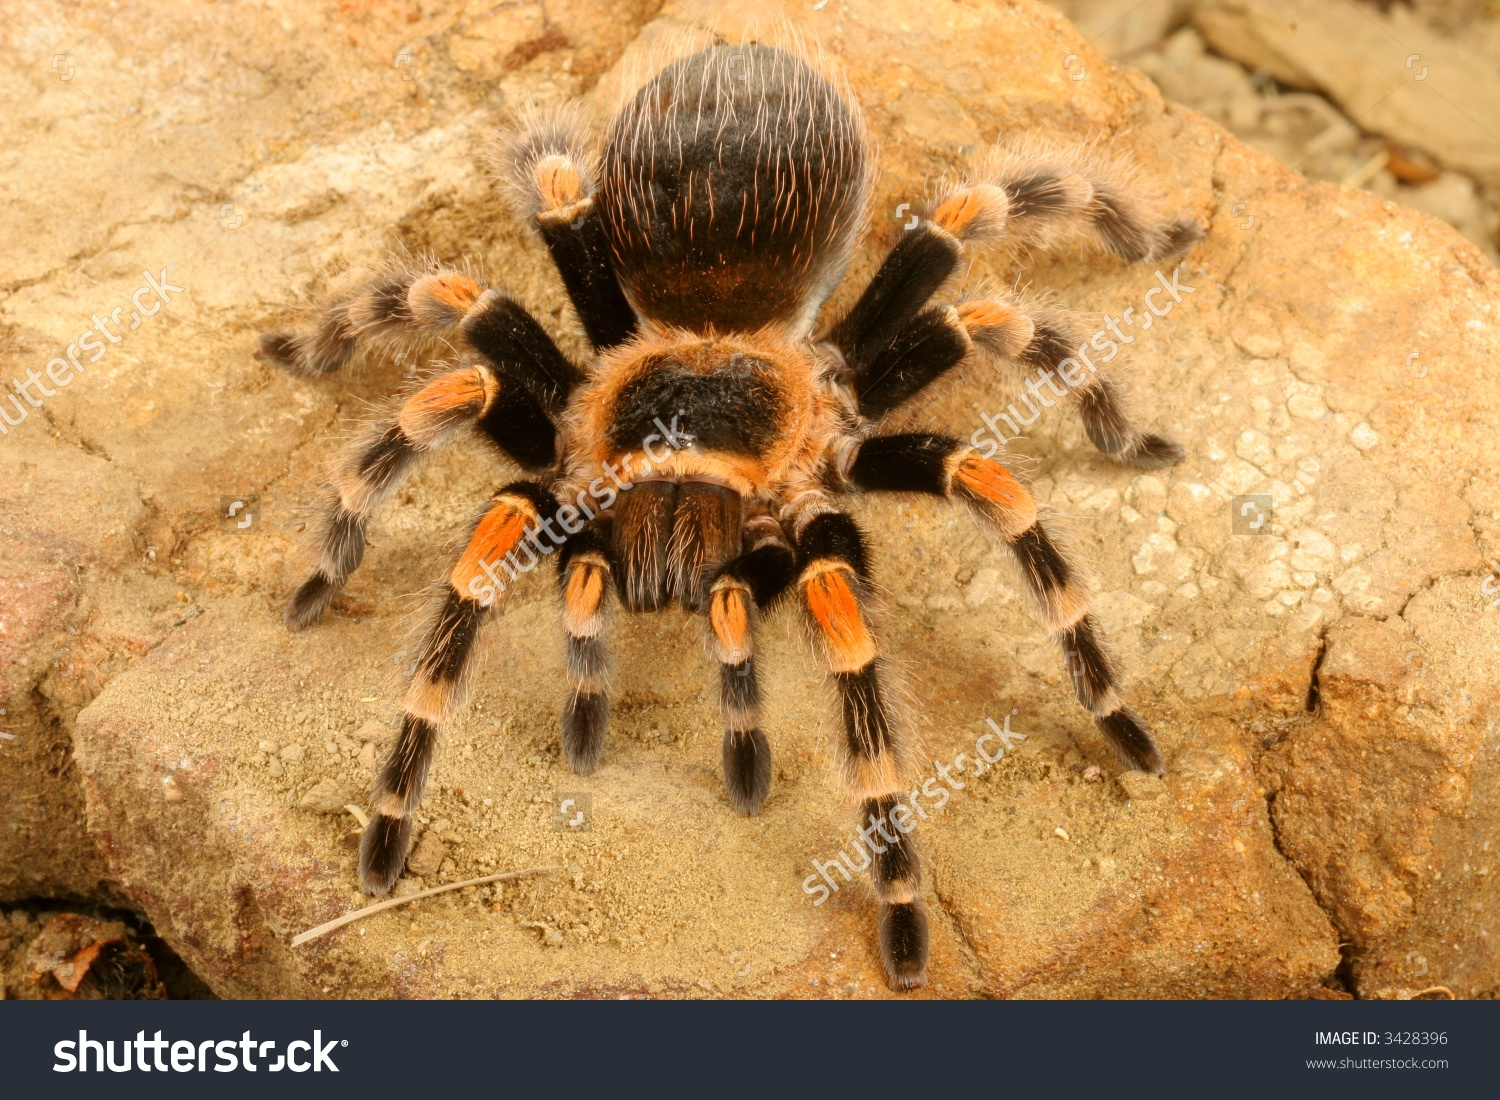 Mexican Redknee Tarantula Brachypelma Smithi Stock Photo 3428396.